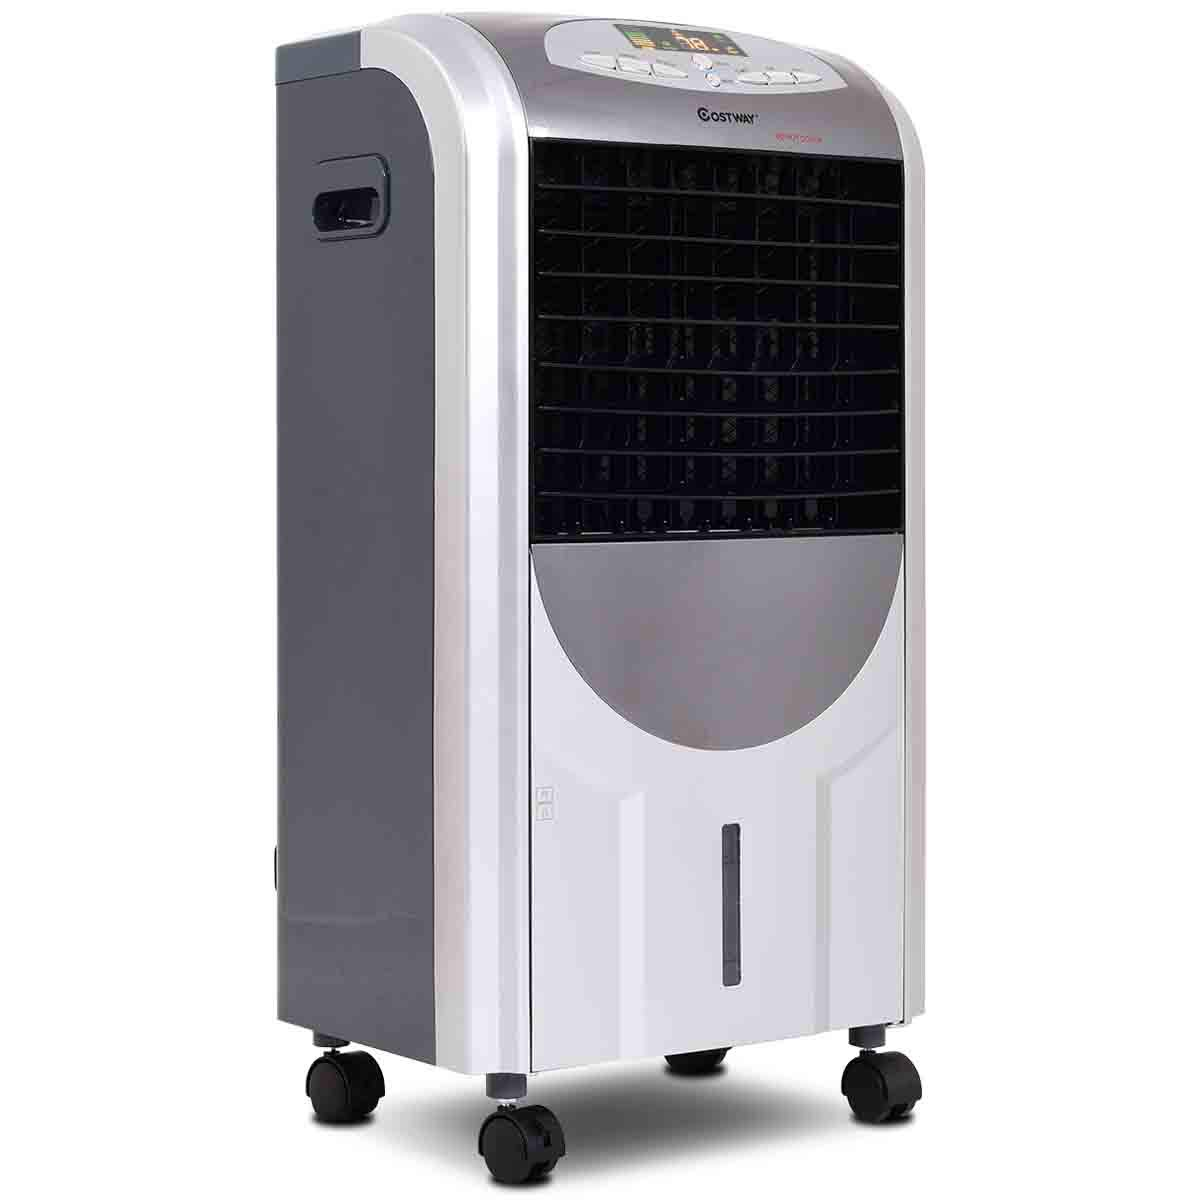 Toolsempire Evaporative Air Conditioner Cooler Fan and Heater Humidifier Portable 3 Wind Speed Remote Control